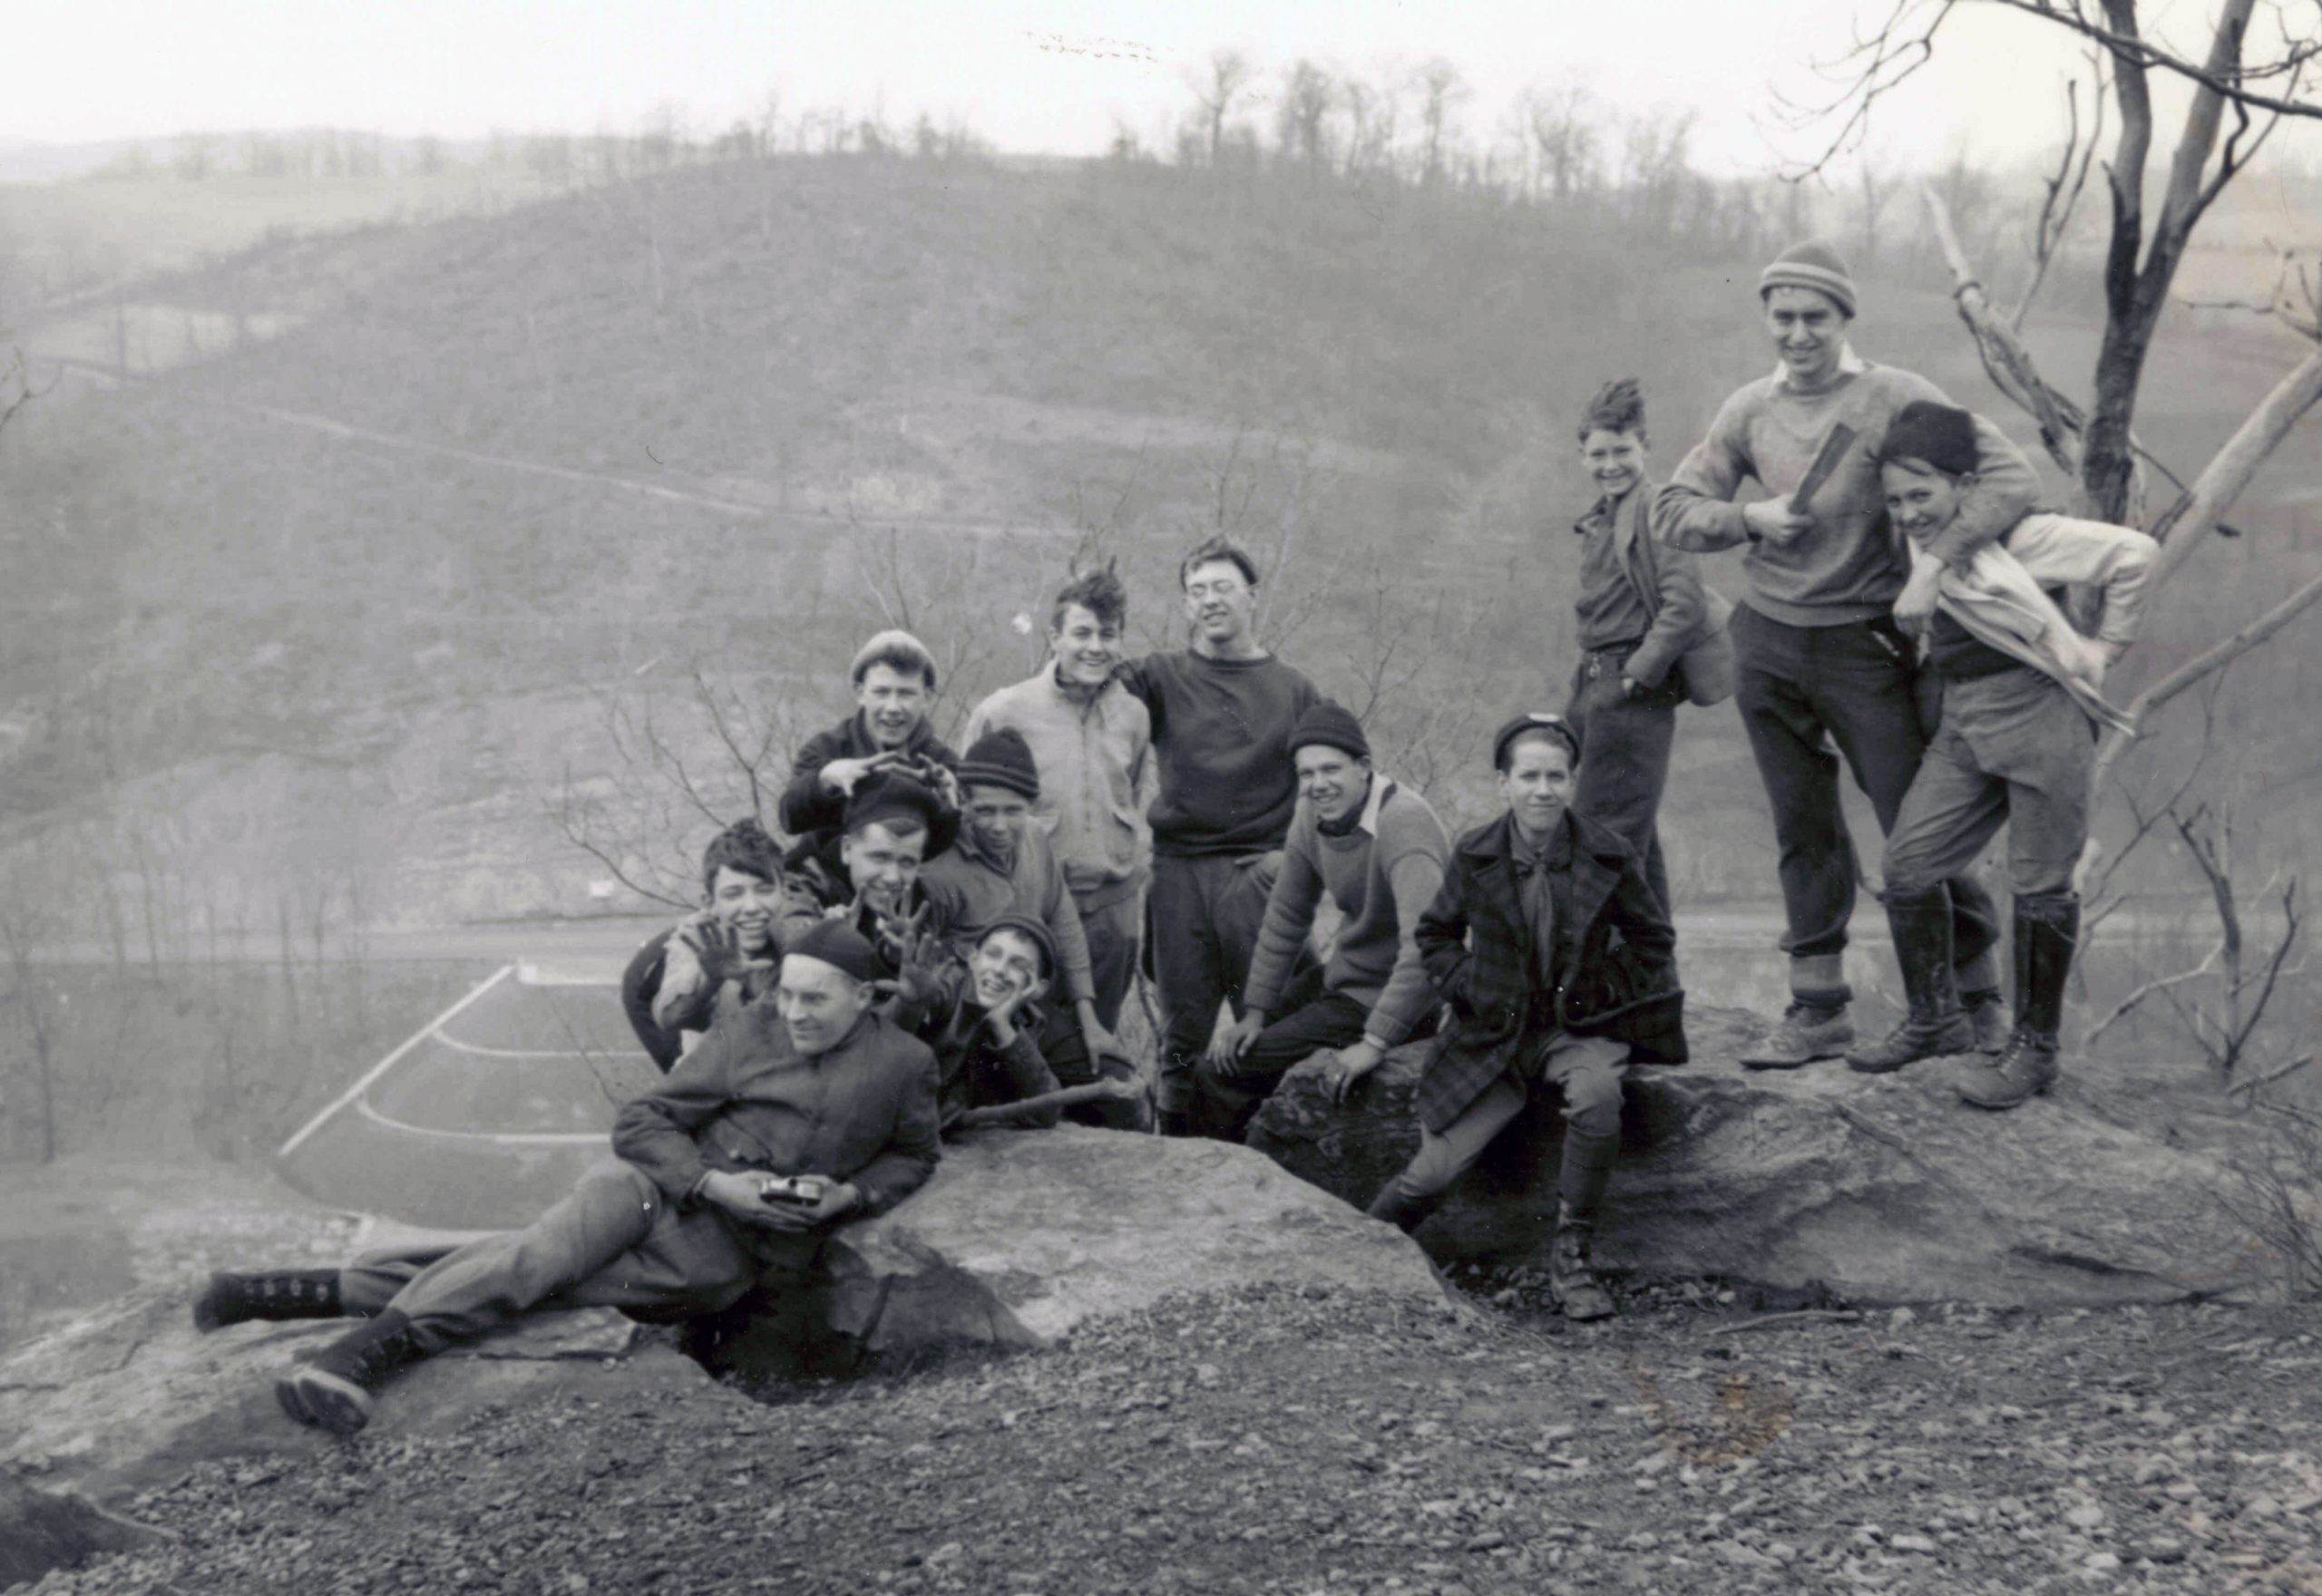 Troop 9 at Buzzard's Roost in 1938